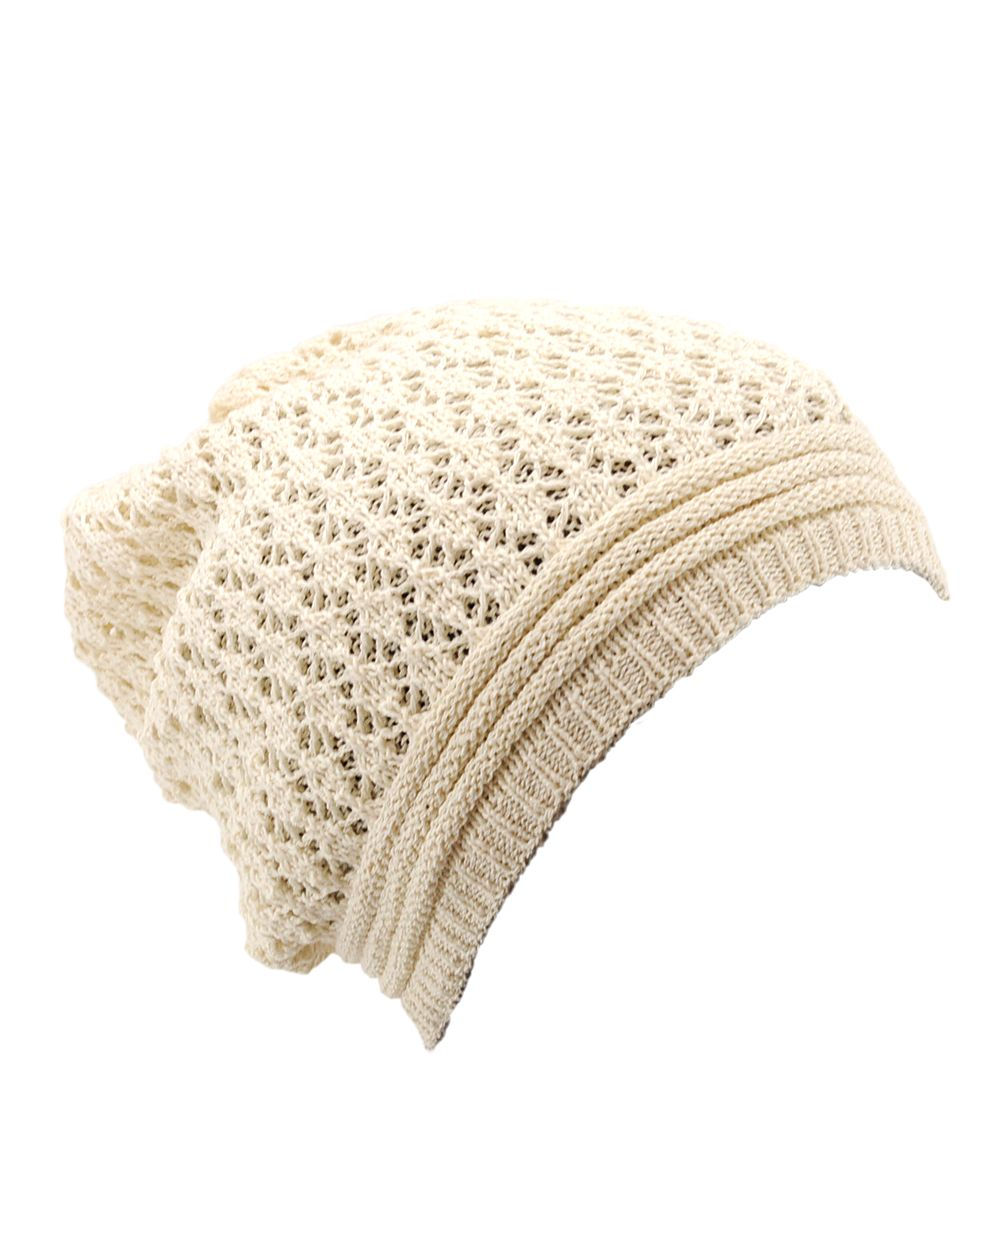 NYFashion101 Lightweight Unisex Solid Color Warm Open Knit Slouch Beanie Hat at Sears.com